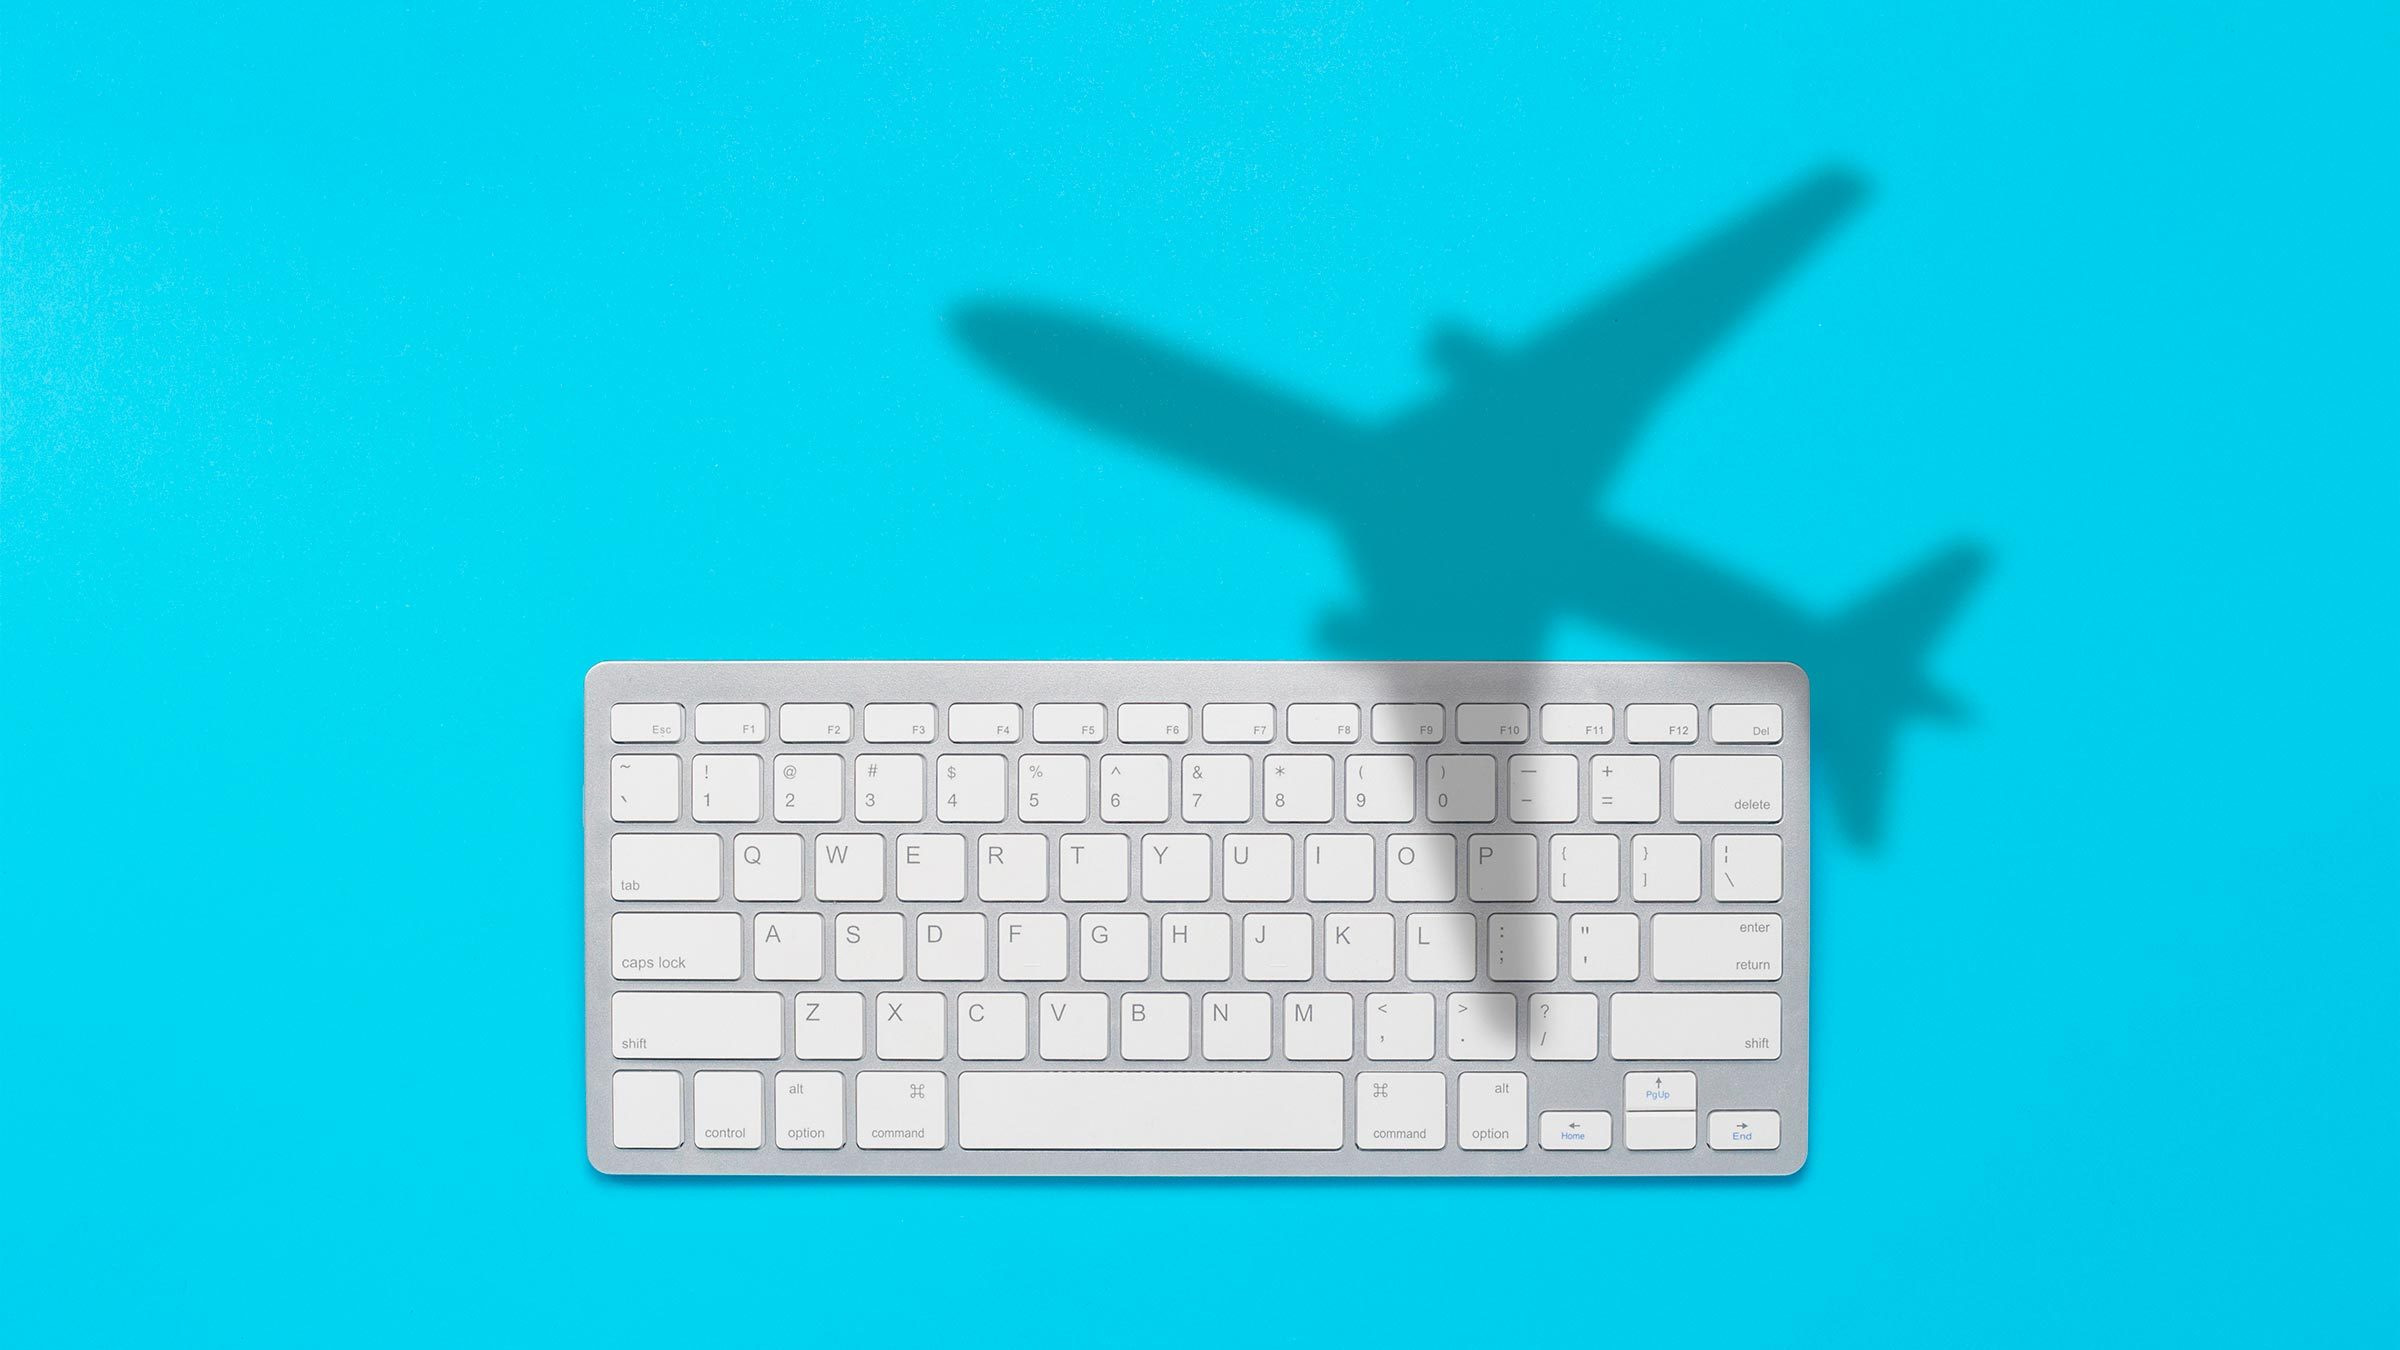 Keyboard and shadow of a flying plane on a blue background. The concept of buying tickets on the Internet online, booking tickets. Flat lay, top view.